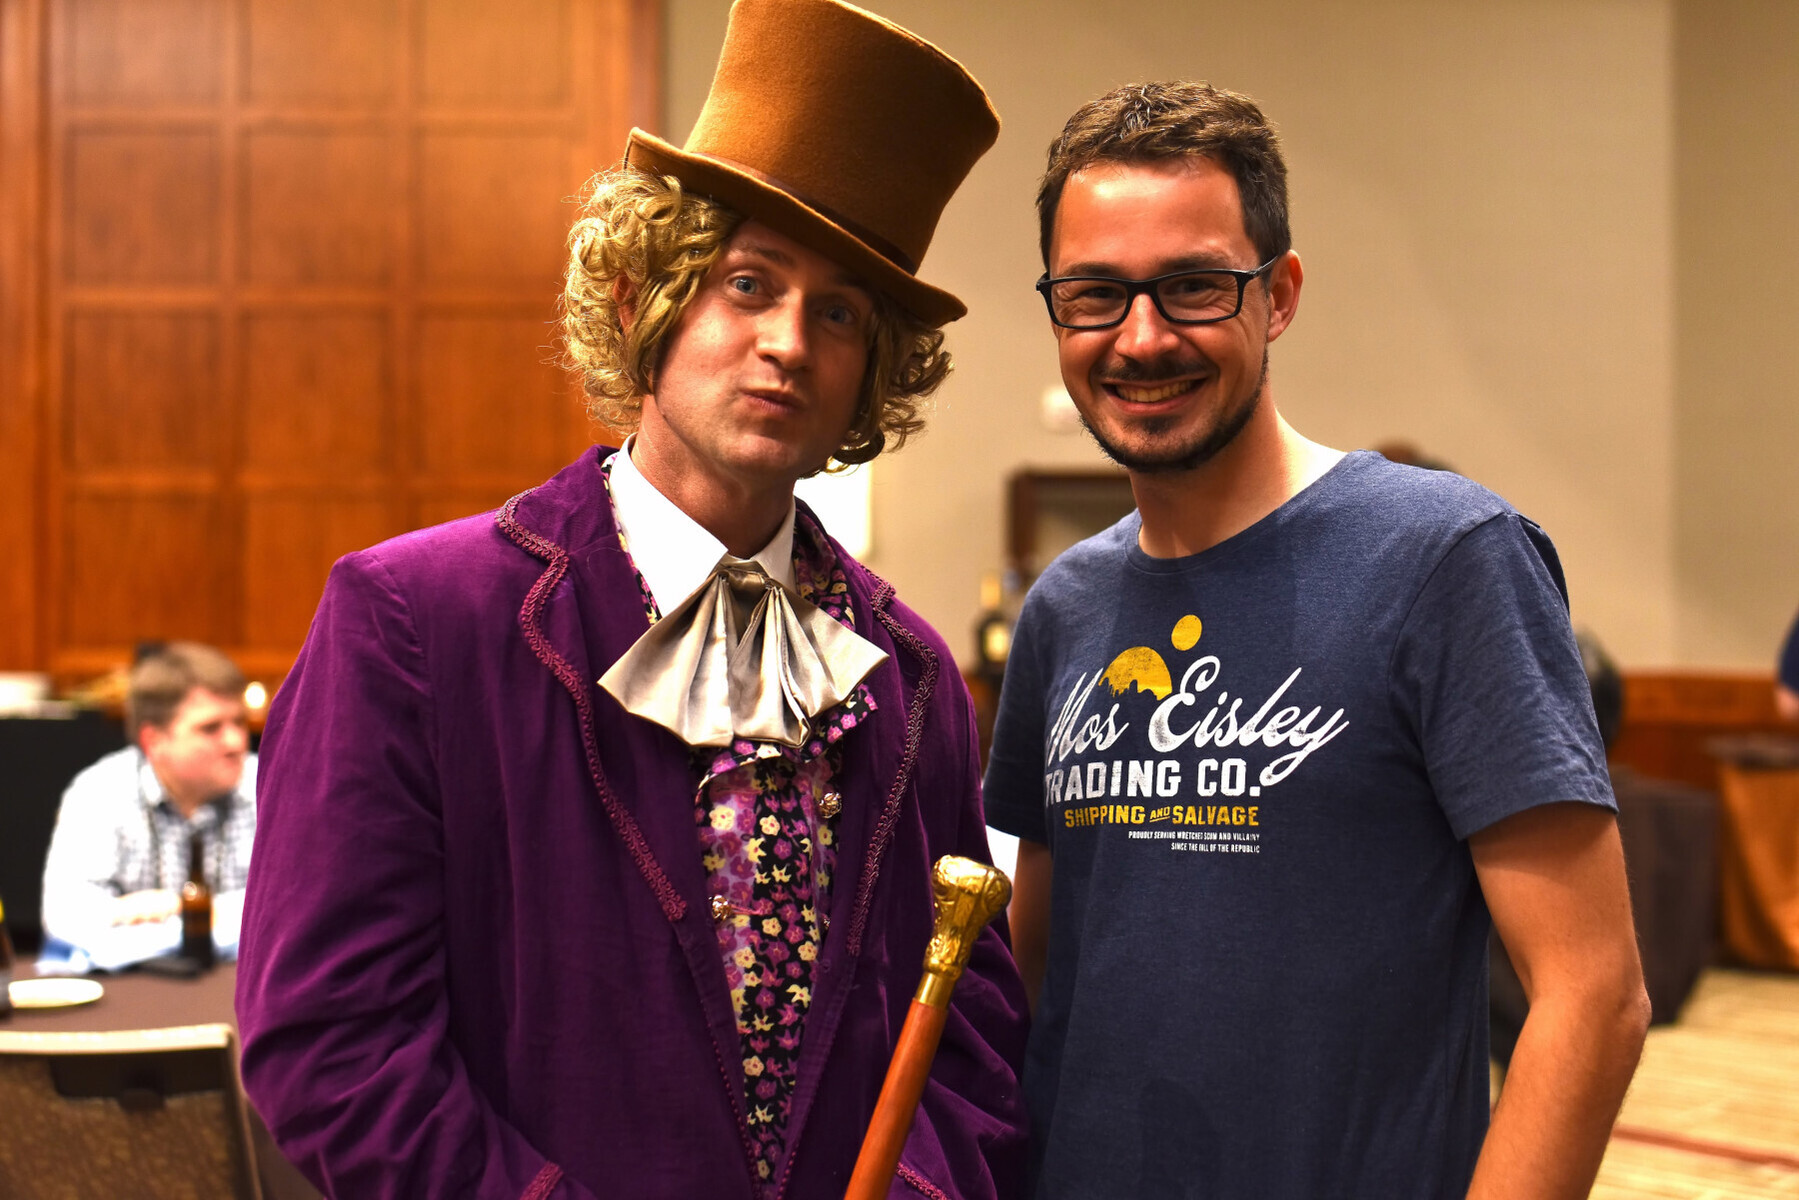 Rob Reynolds as Willi Wonka after the event